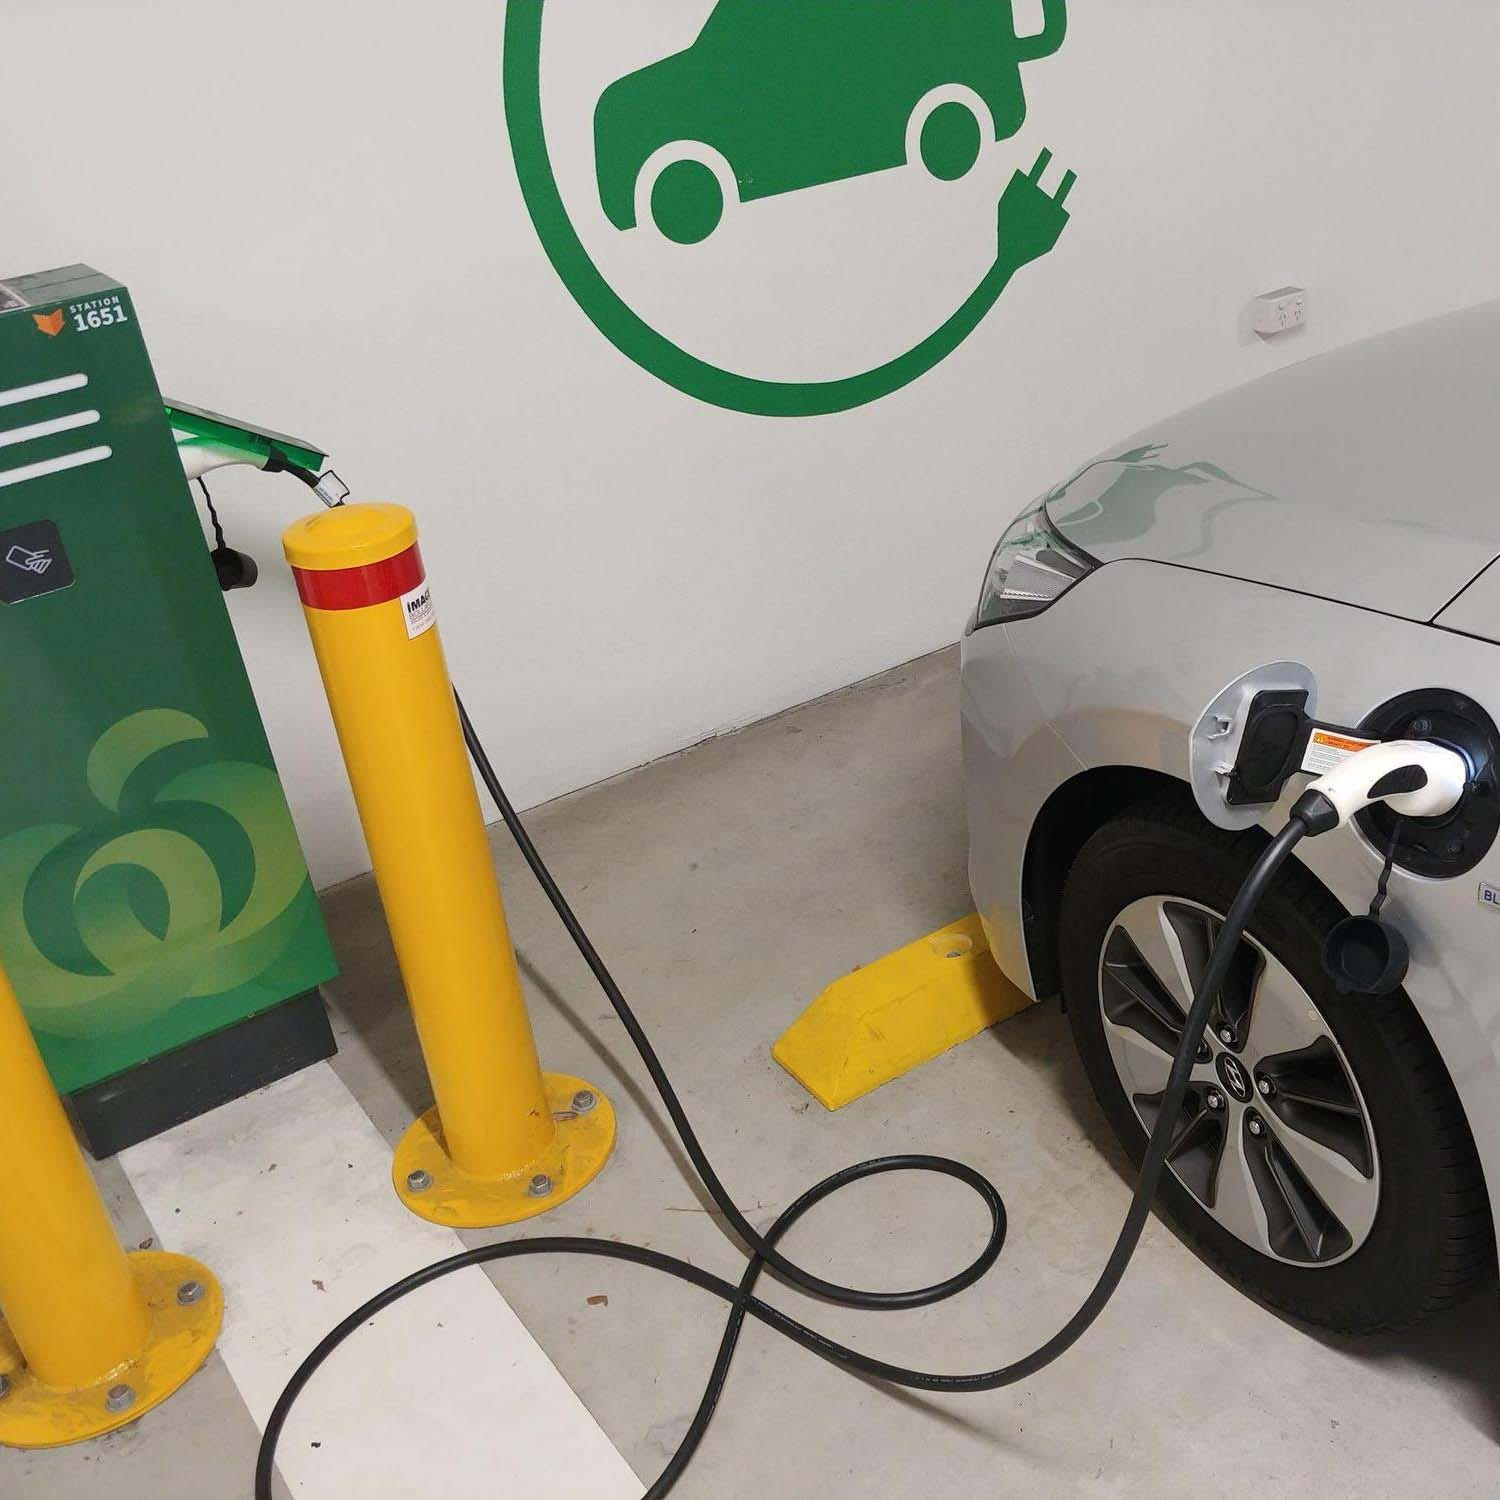 Where can you charge your electric car in Australia?